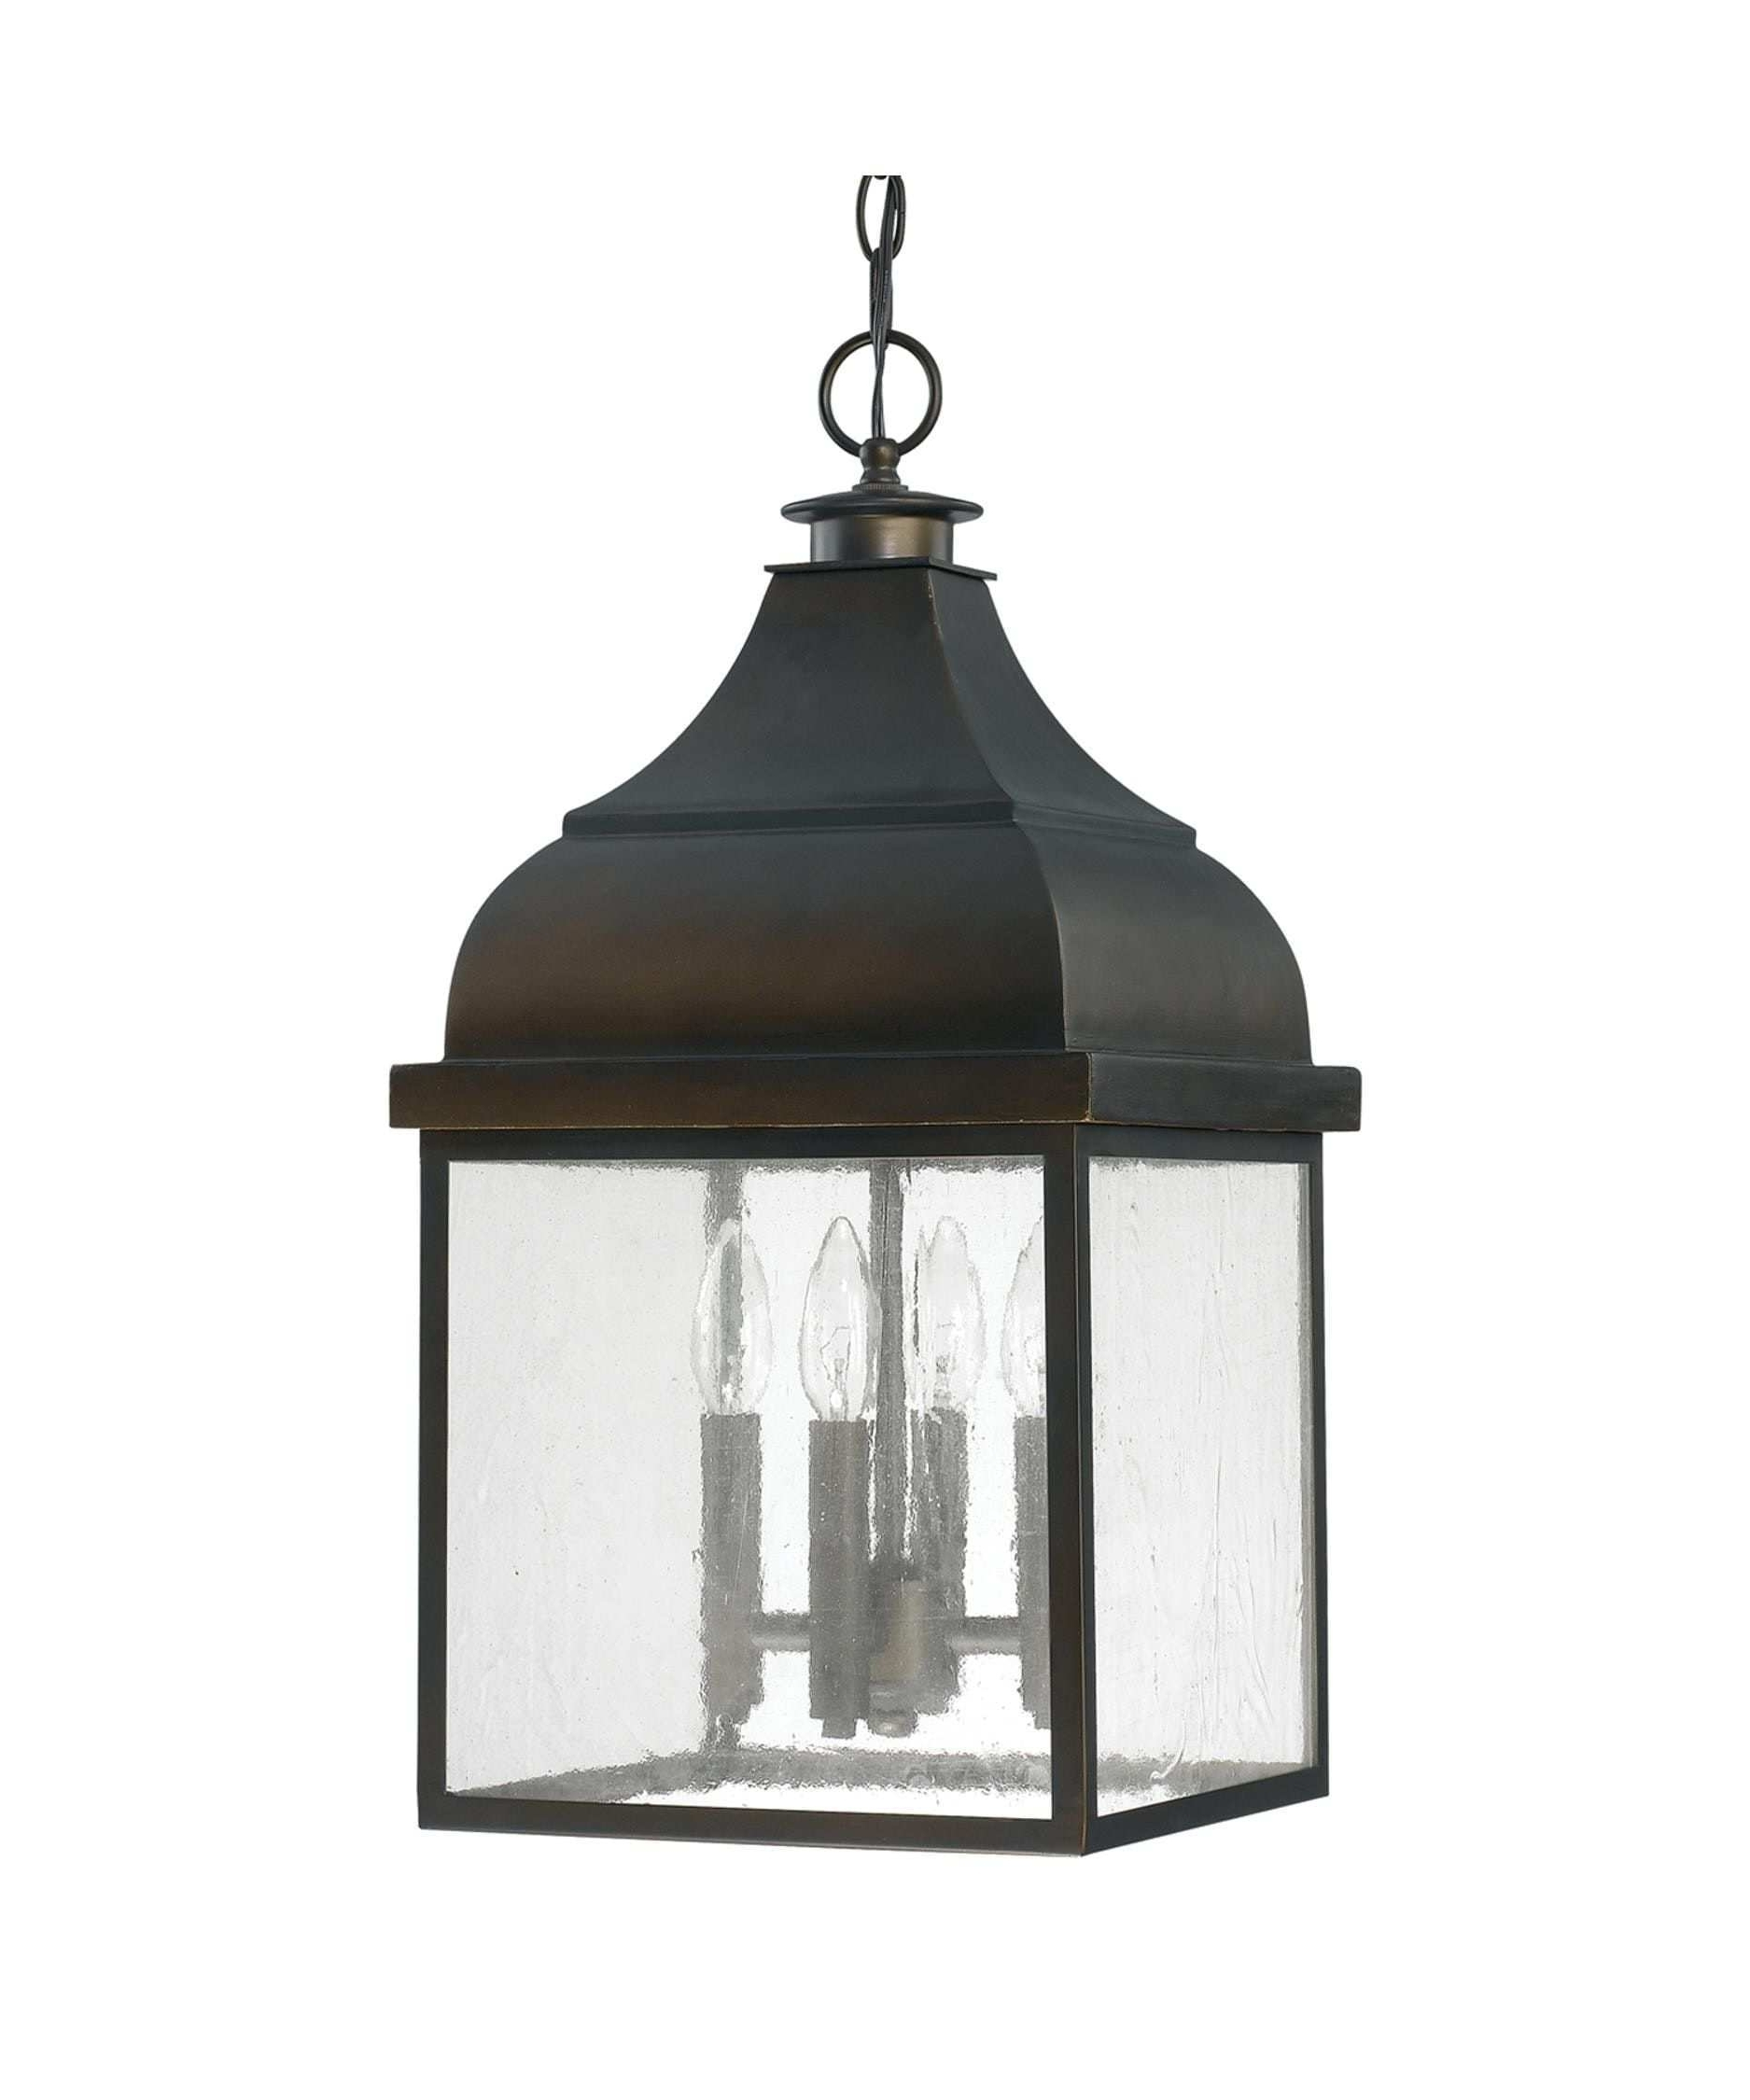 Most Recently Released Wayfair Ceiling Light Fixtures Beautiful Outdoor Hanging Light Inside Modern Garden Porch Light Fixtures At Wayfair (View 7 of 20)